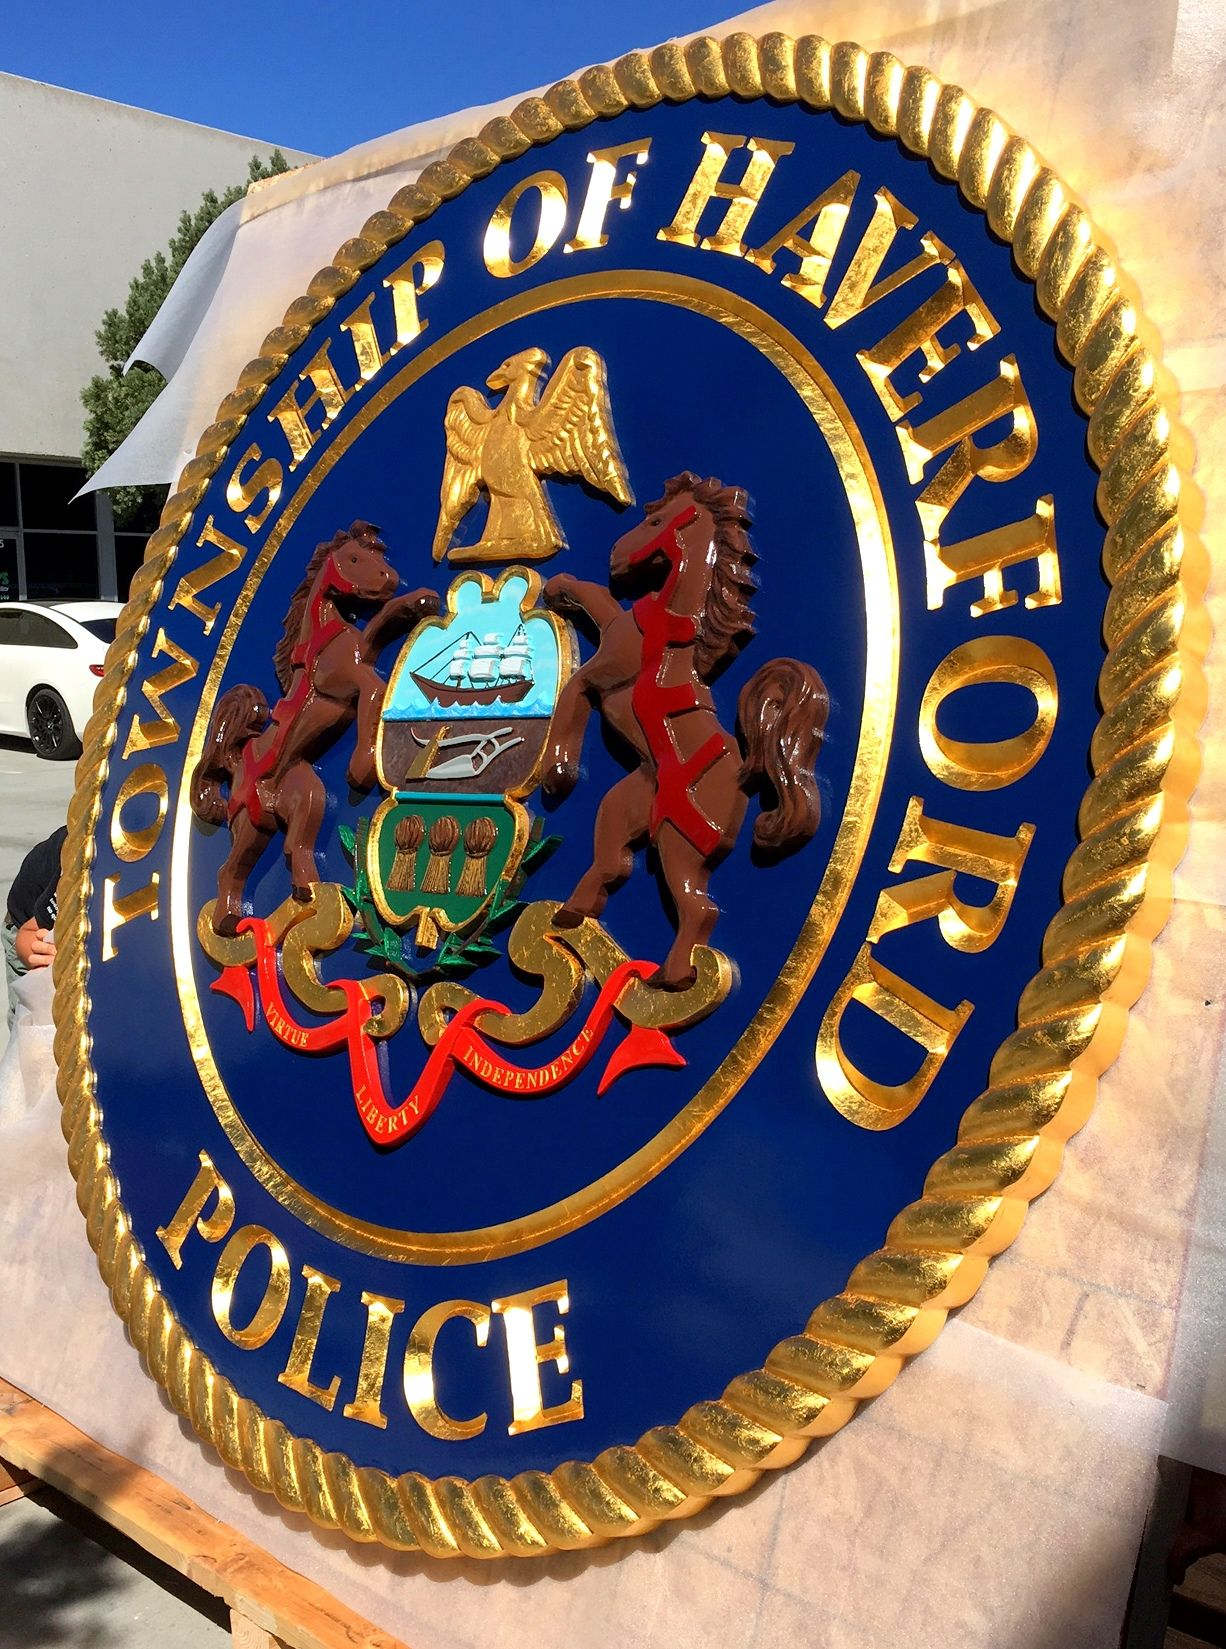 M7329 - Carved 3D Gold-Leaf Gilded Wall Plaque  for the Police Department of the Township of Haverford,with  Coat-of-arms of the State of Pennsylvania